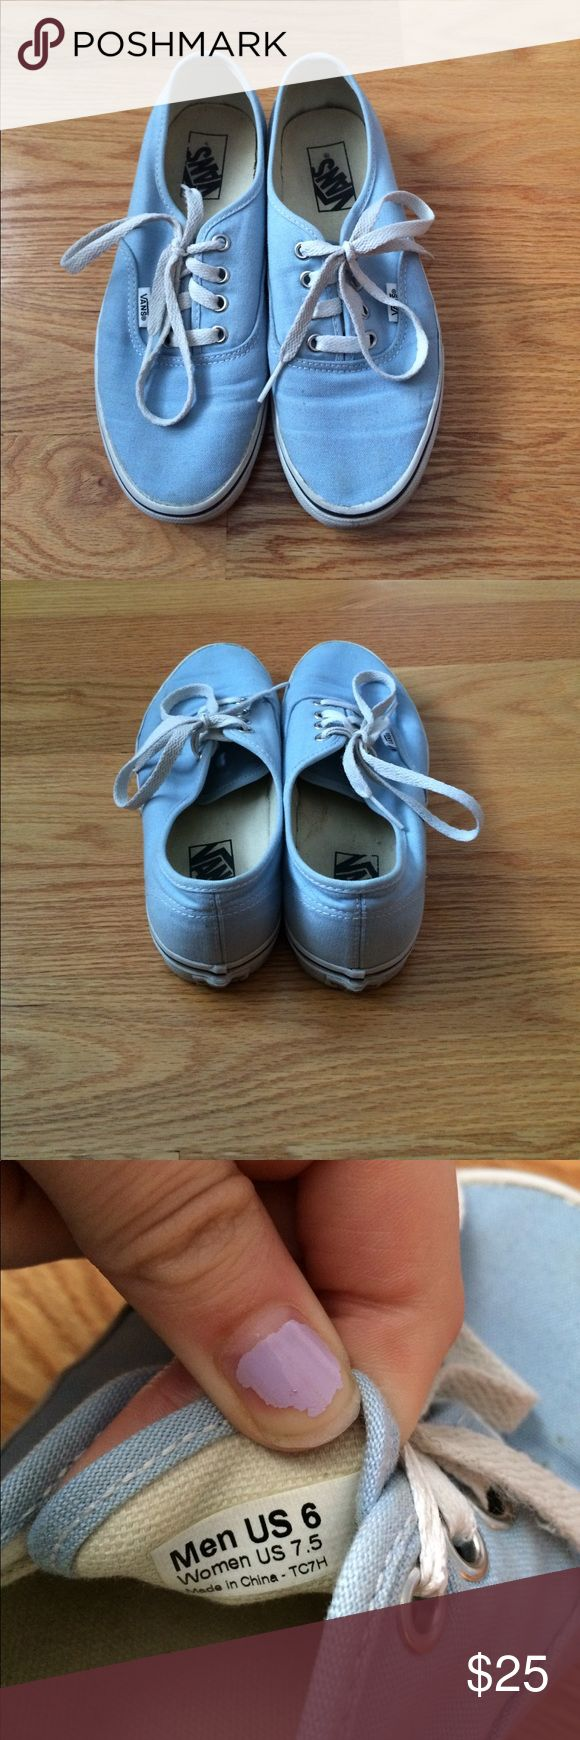 Vans Shoes Light blue vans, size 7.5 in woman's and 5 in men's, good condition, not warn many times, my name is on the inside so I would just have to cross that out. Vans Shoes Sneakers